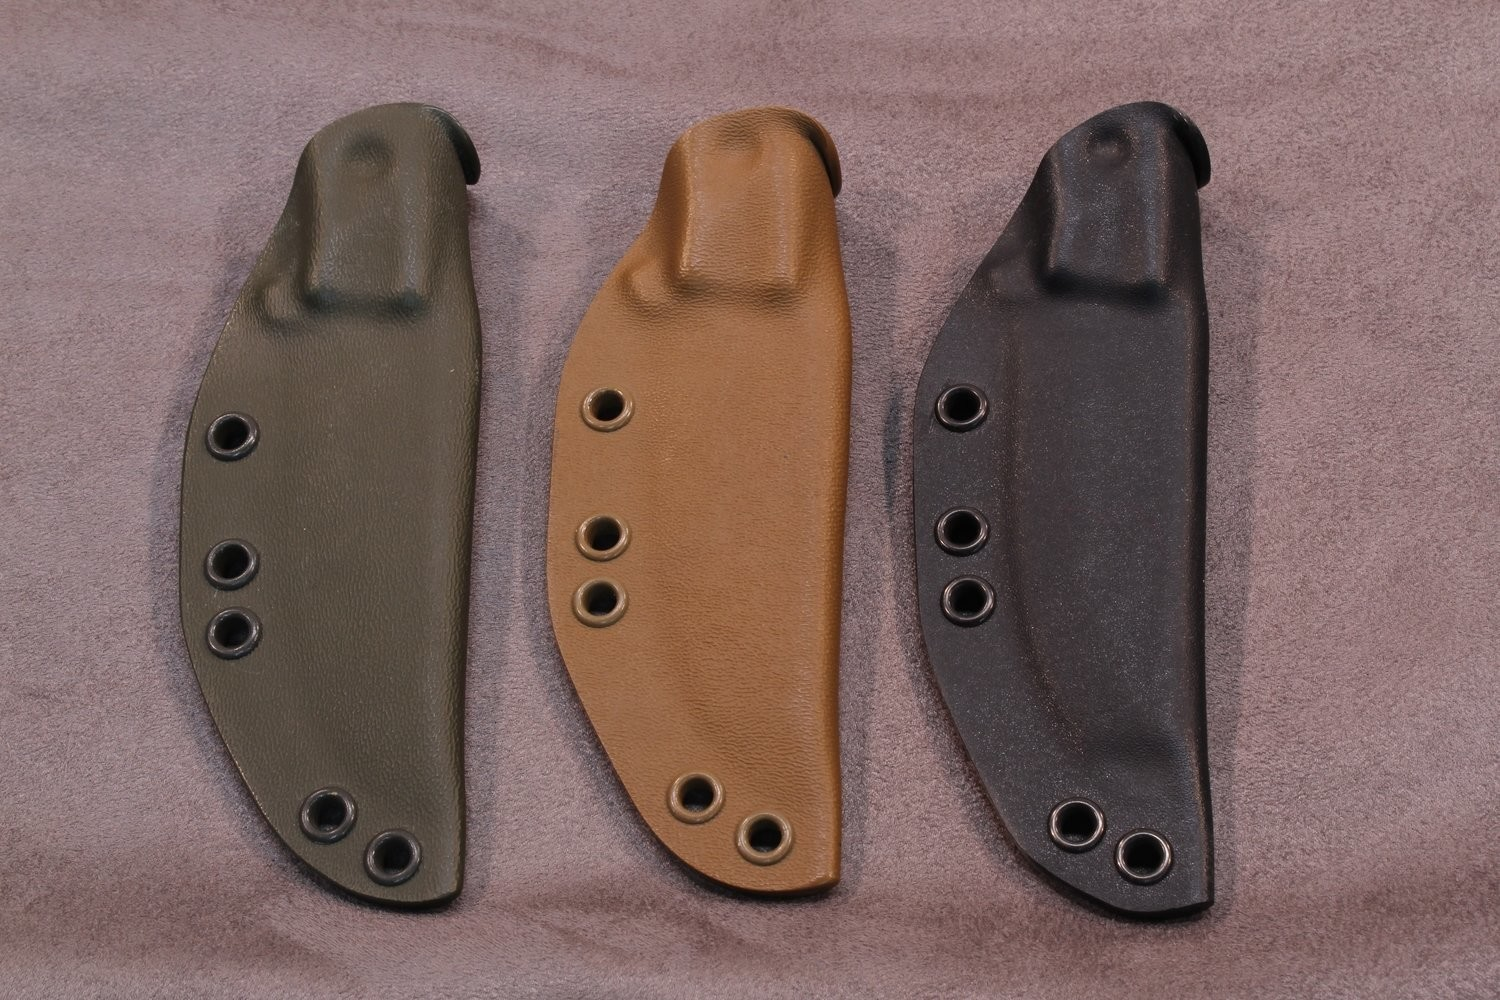 3DK Replacement Kydex Sheath For M.A.K. - Synthetic Handle